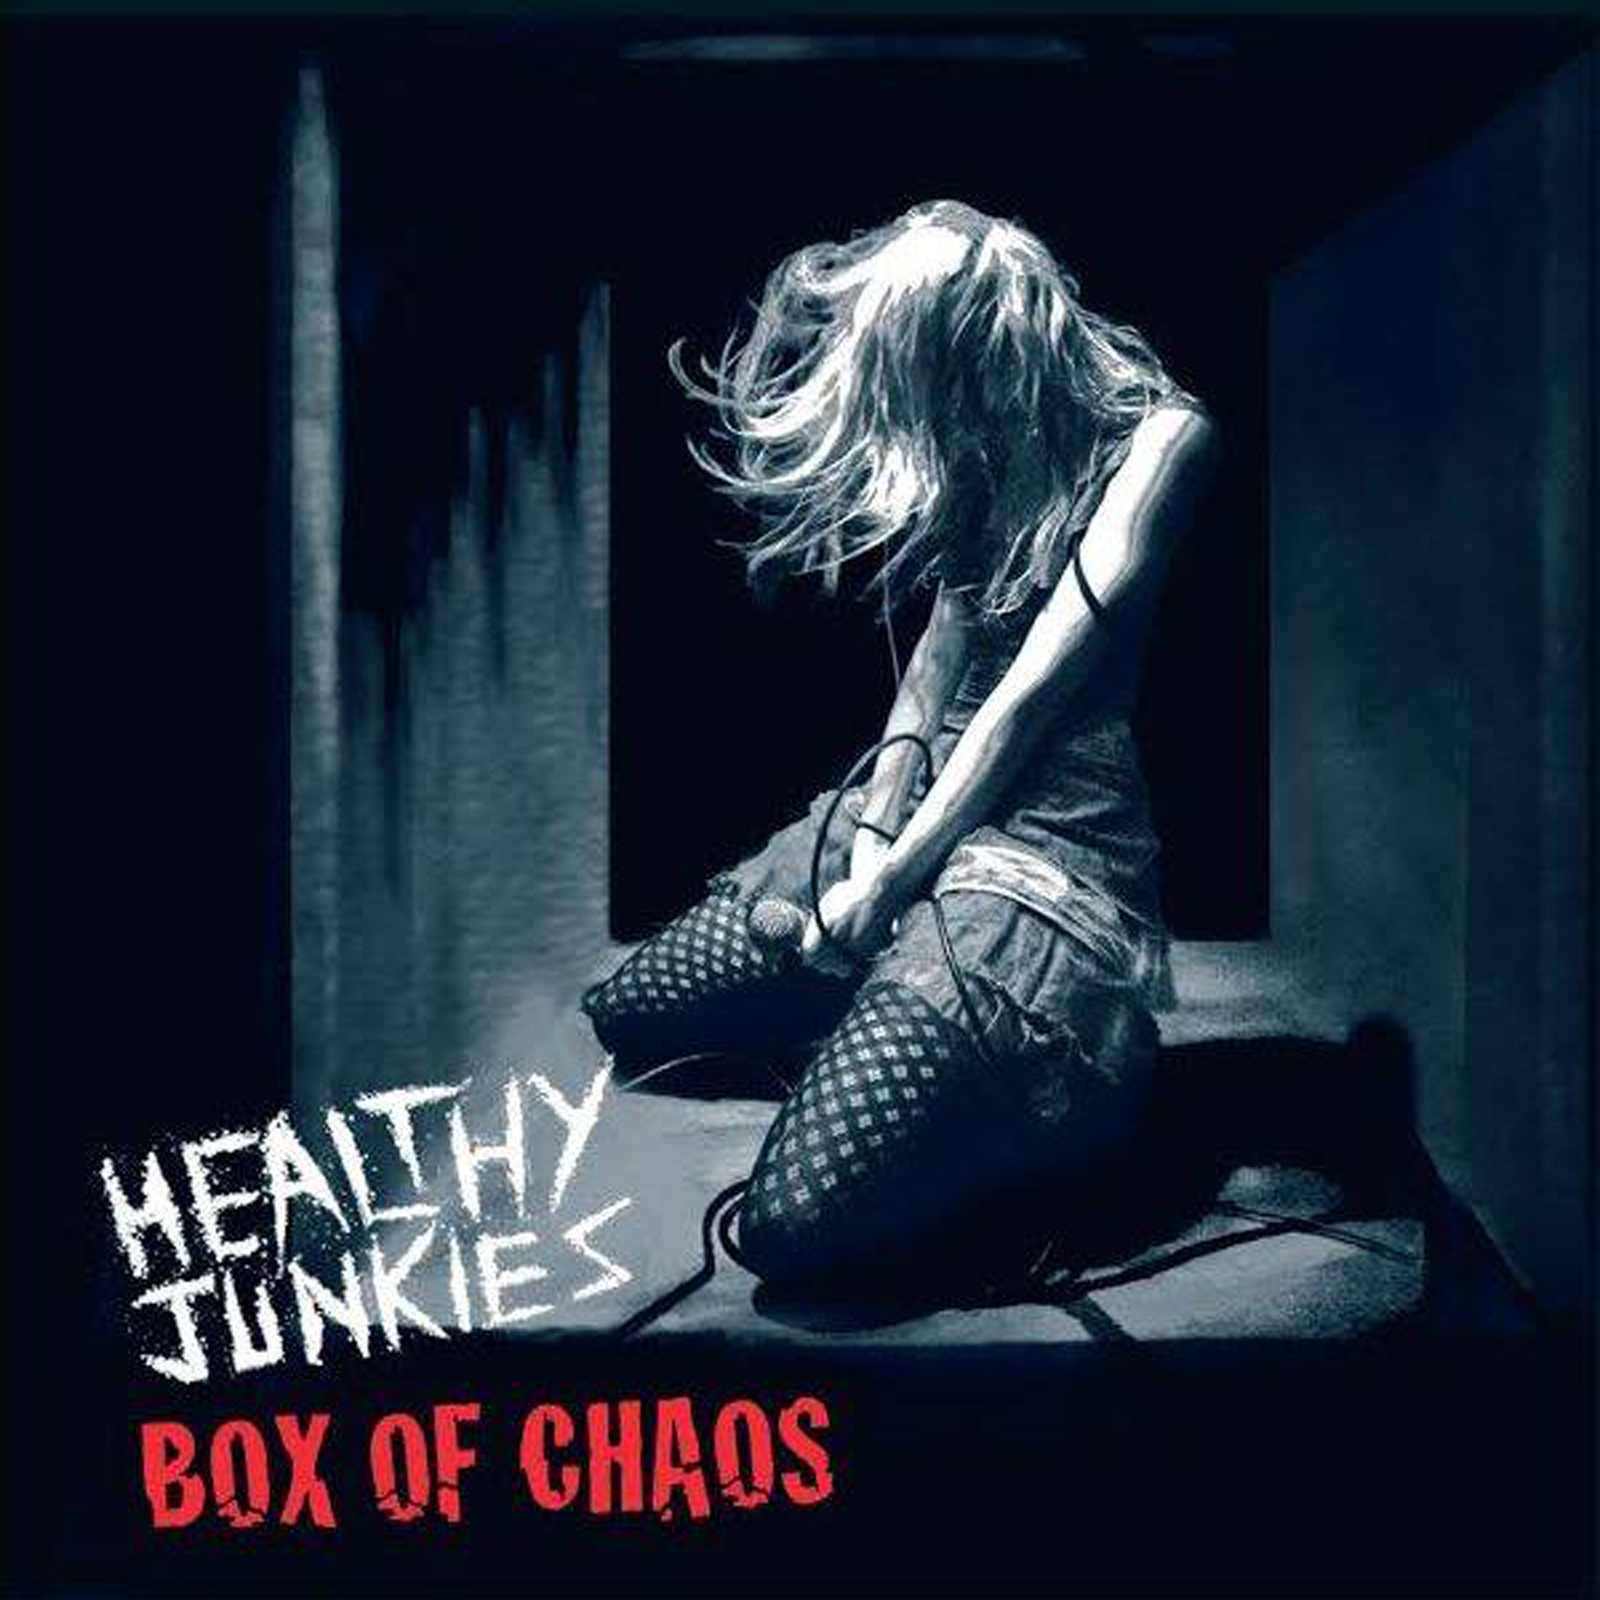 Box of chaos front cover 1600